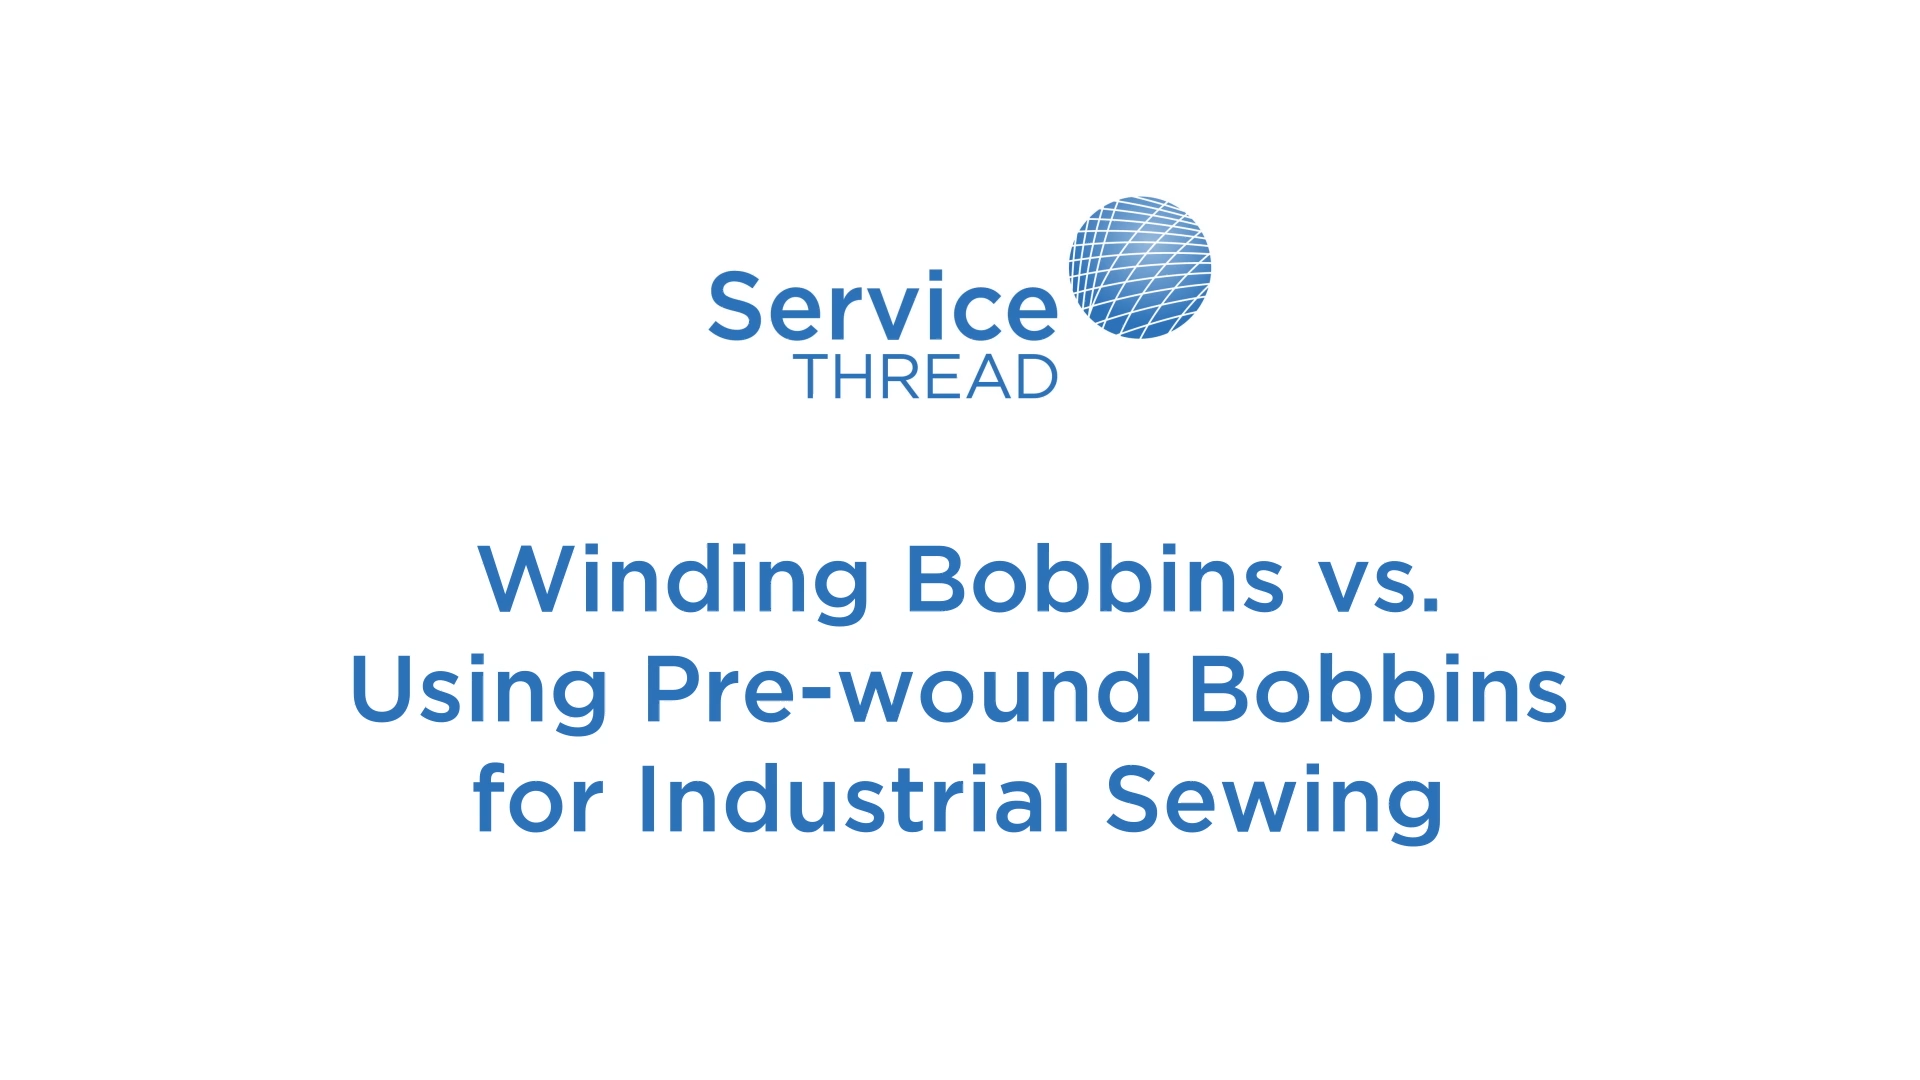 Winding Bobbins vs Using Pre-Wound Bobbins for Industrial Sewing